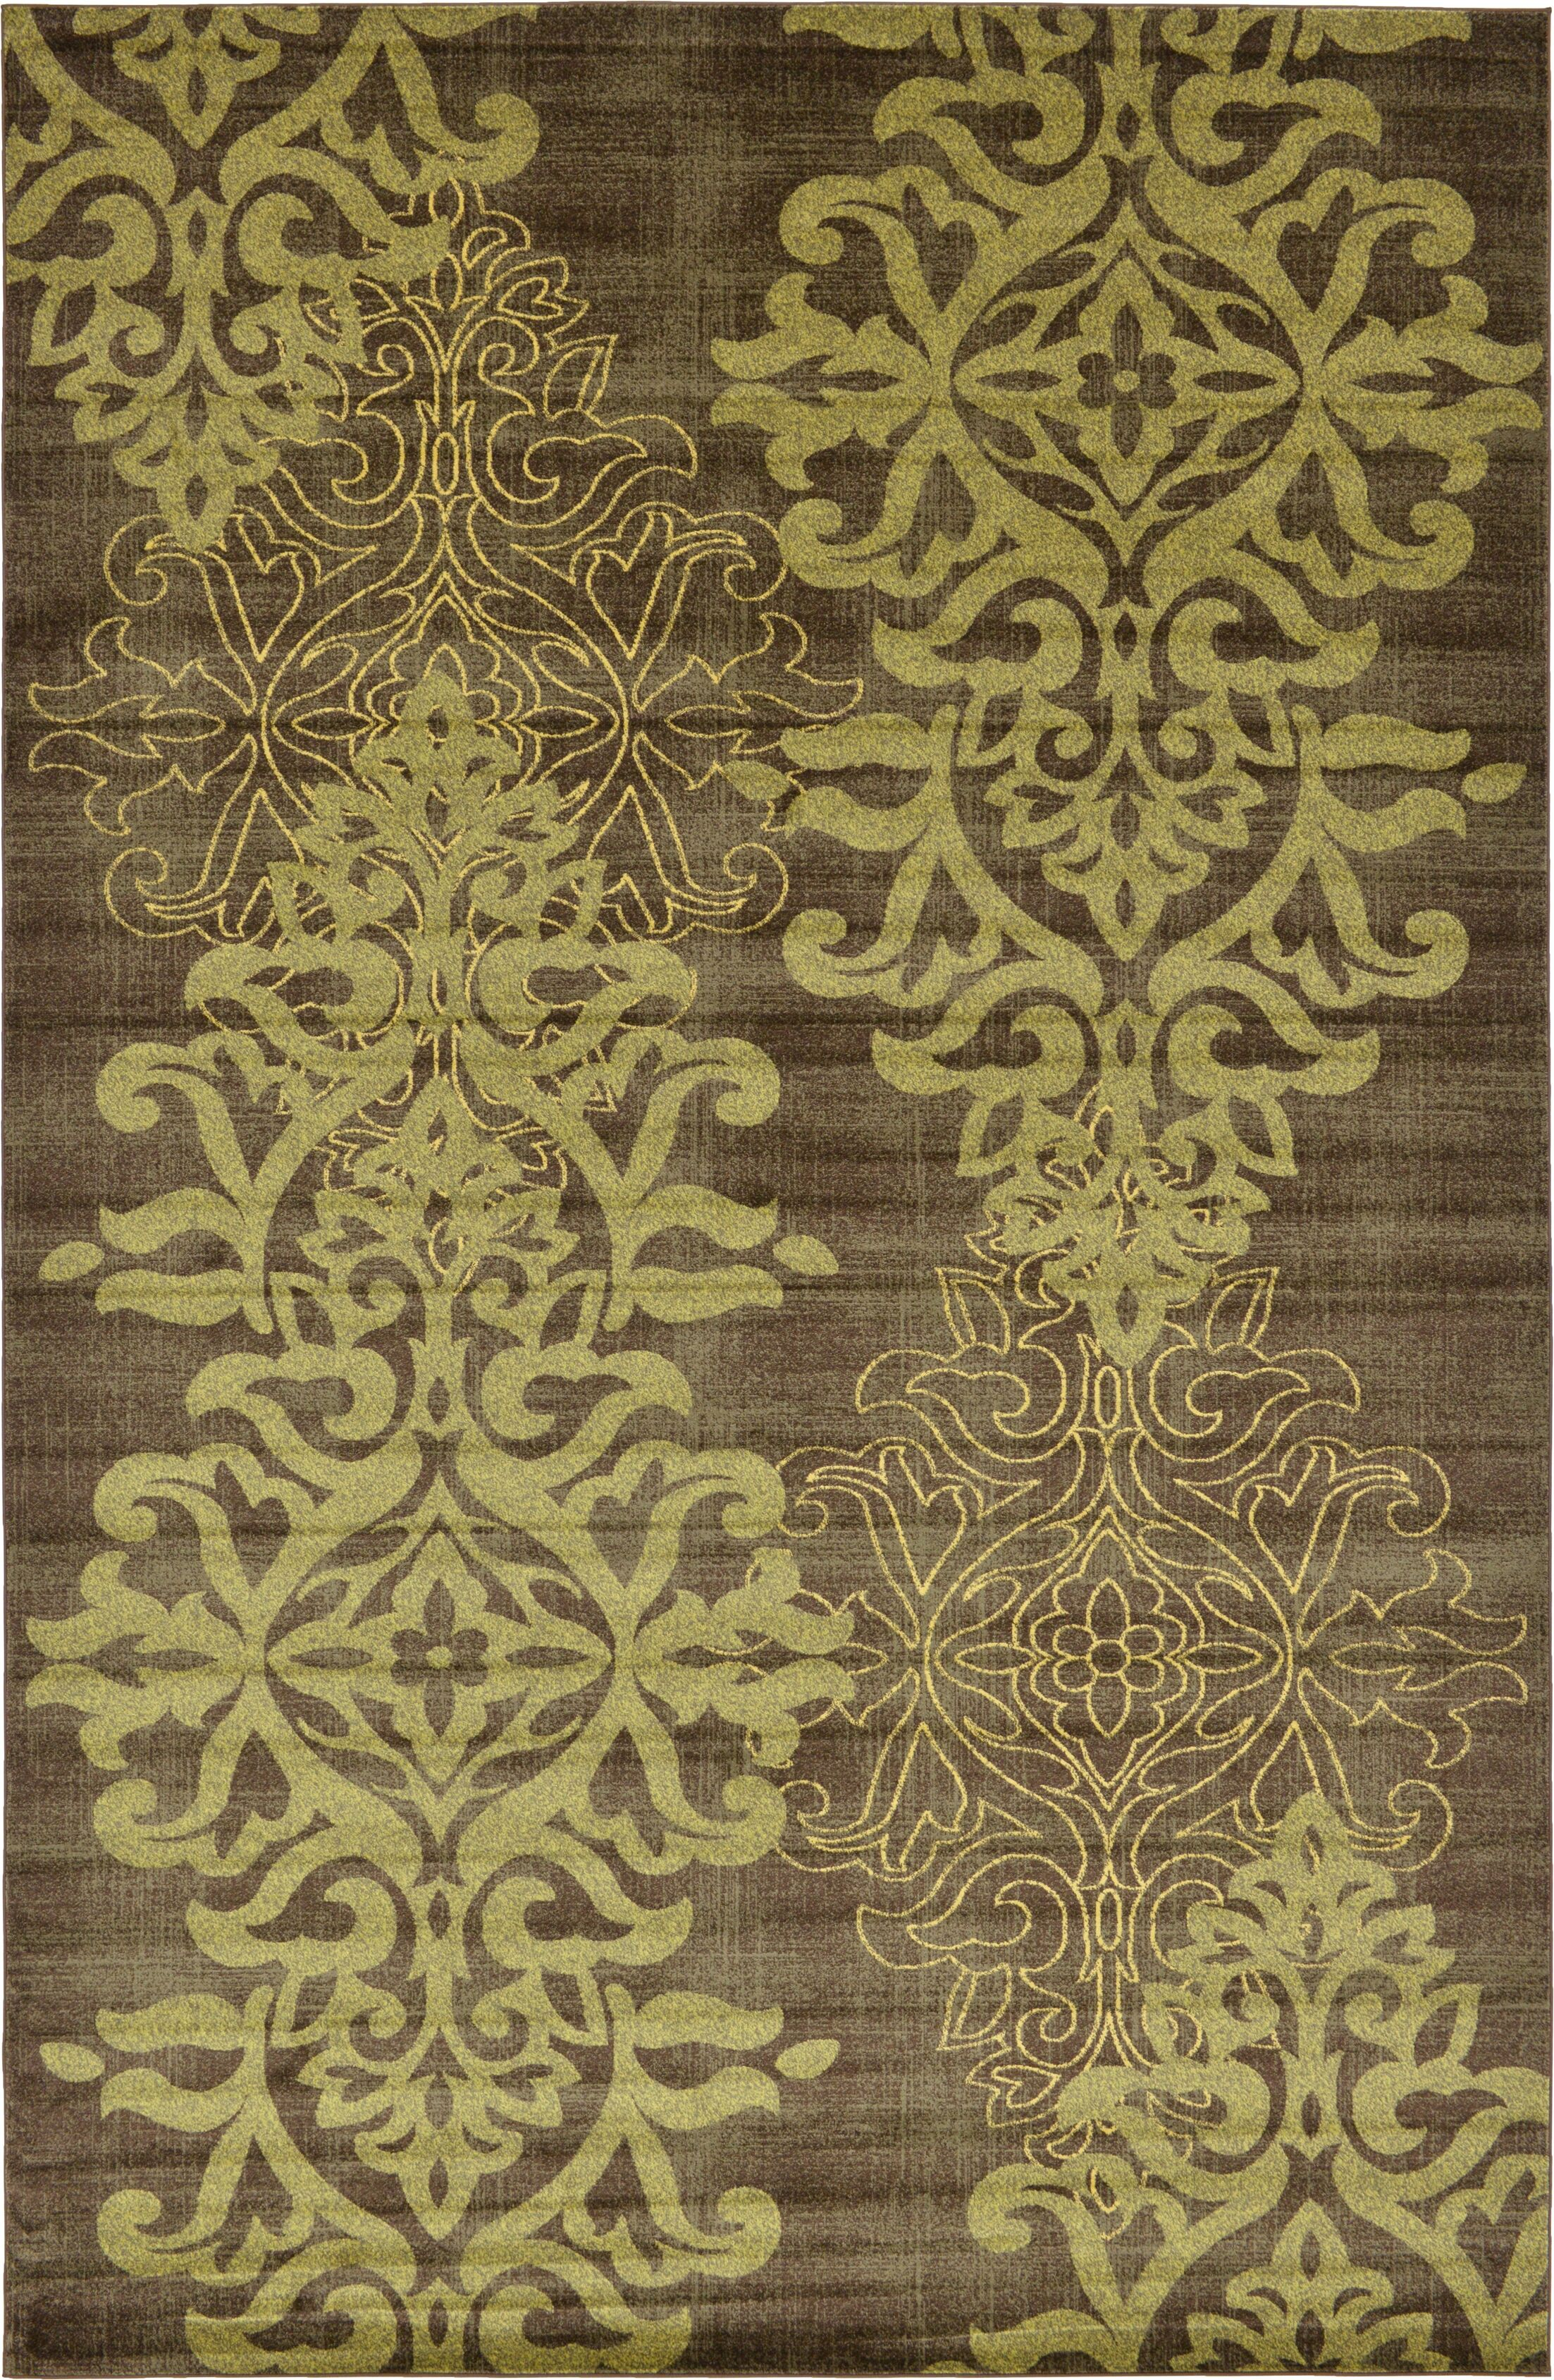 Rodney Brown Area Rug Size: Rectangle 10'6